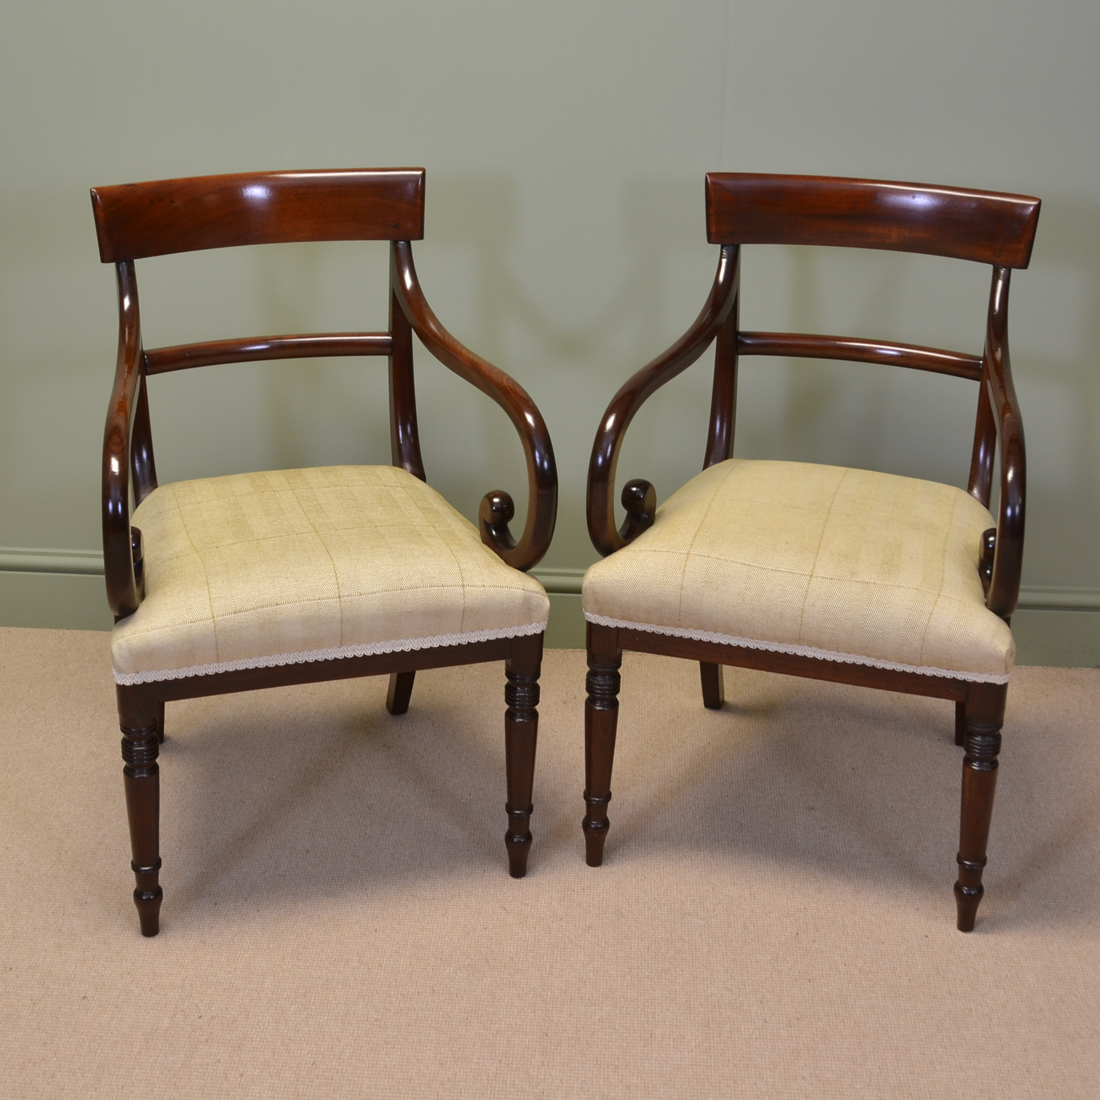 Elegant Pair Of Regency Mahogany Antique Desk Side Carver Chairs Antiques World